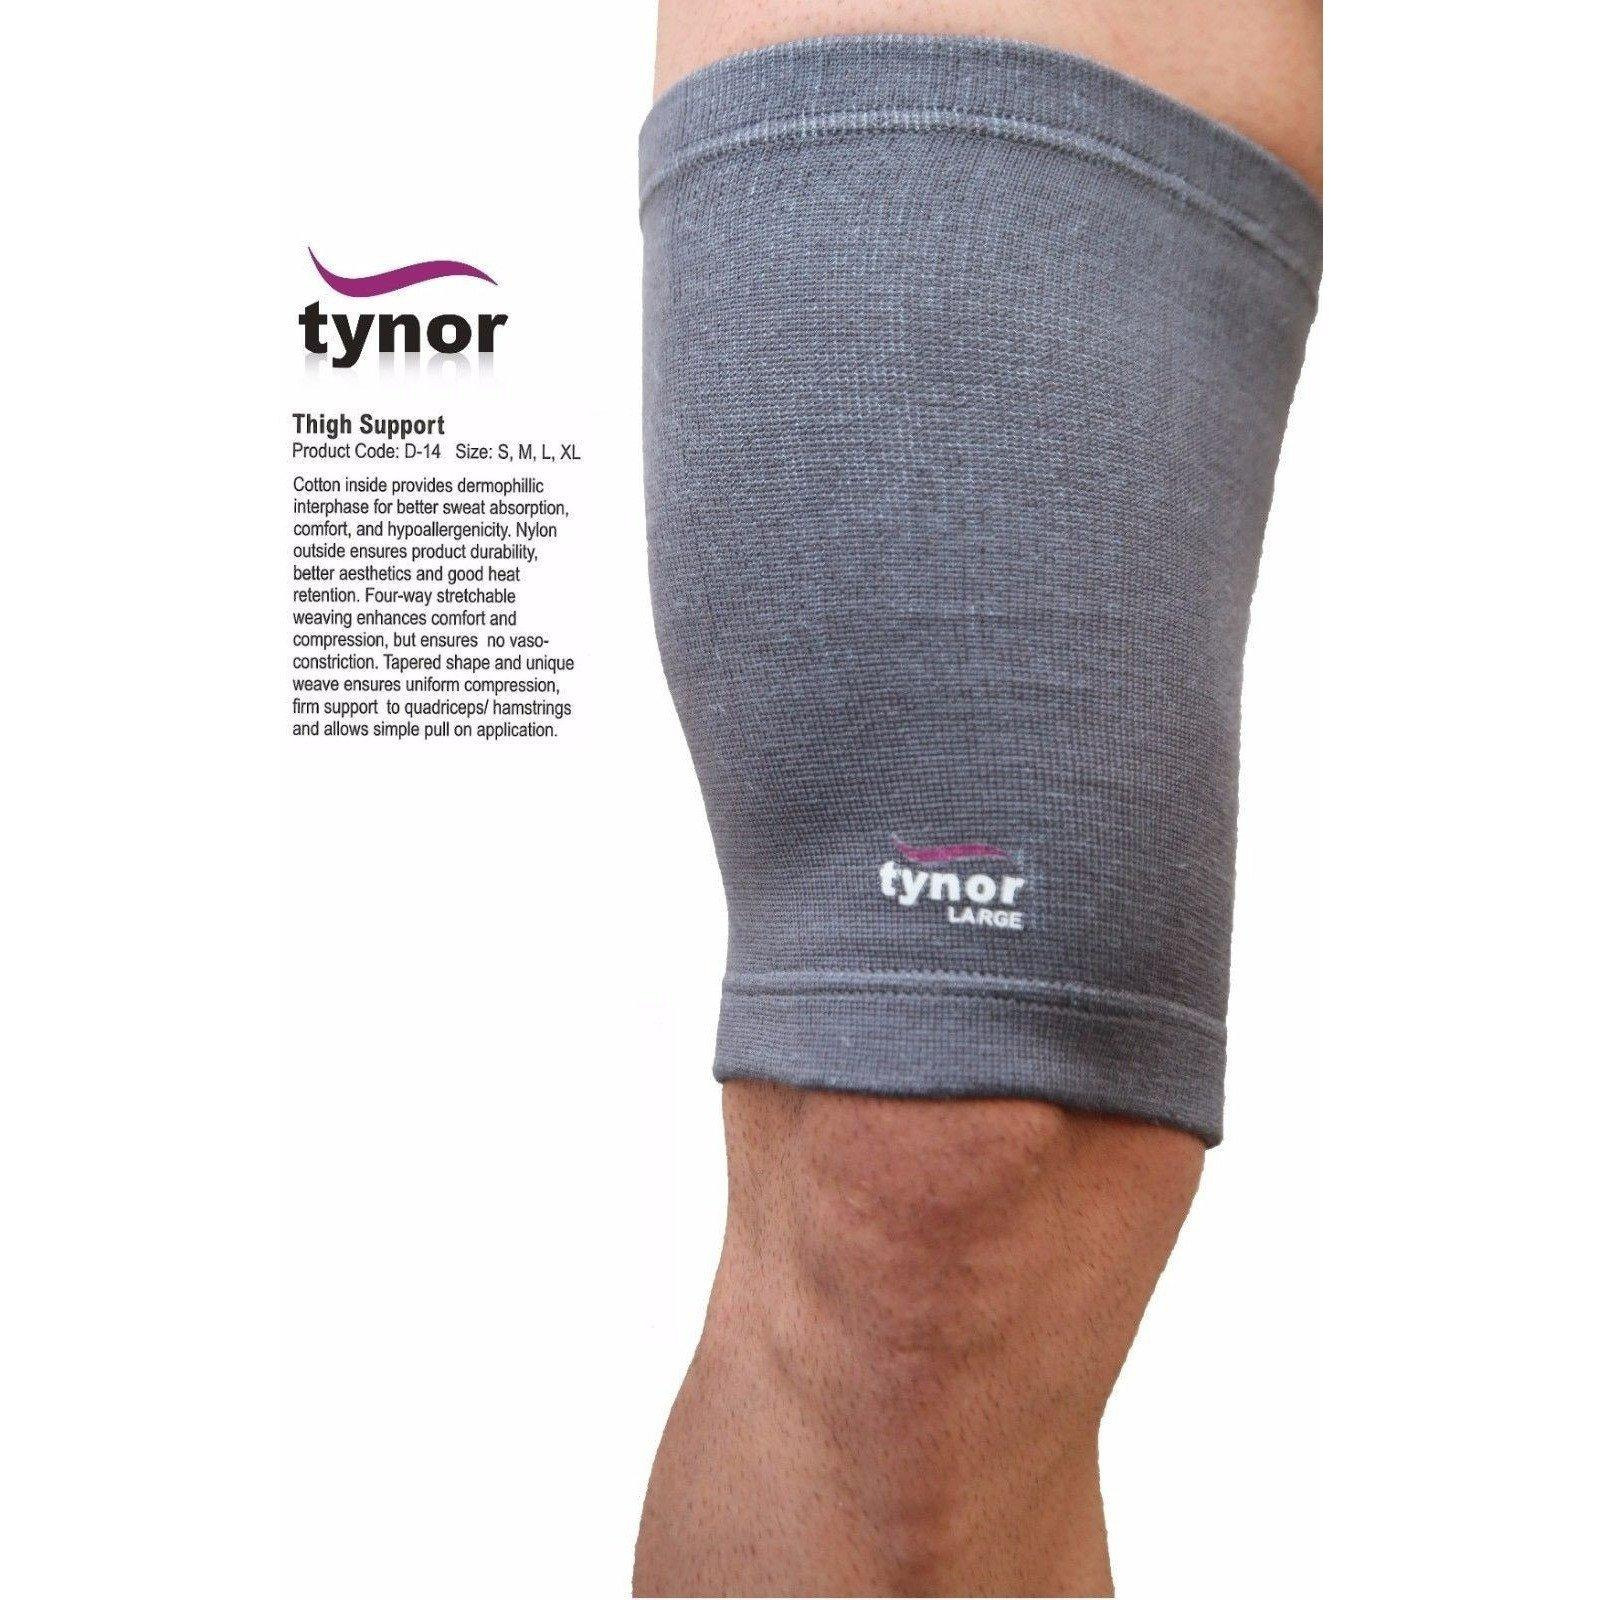 Tynor Thigh Support - D 14